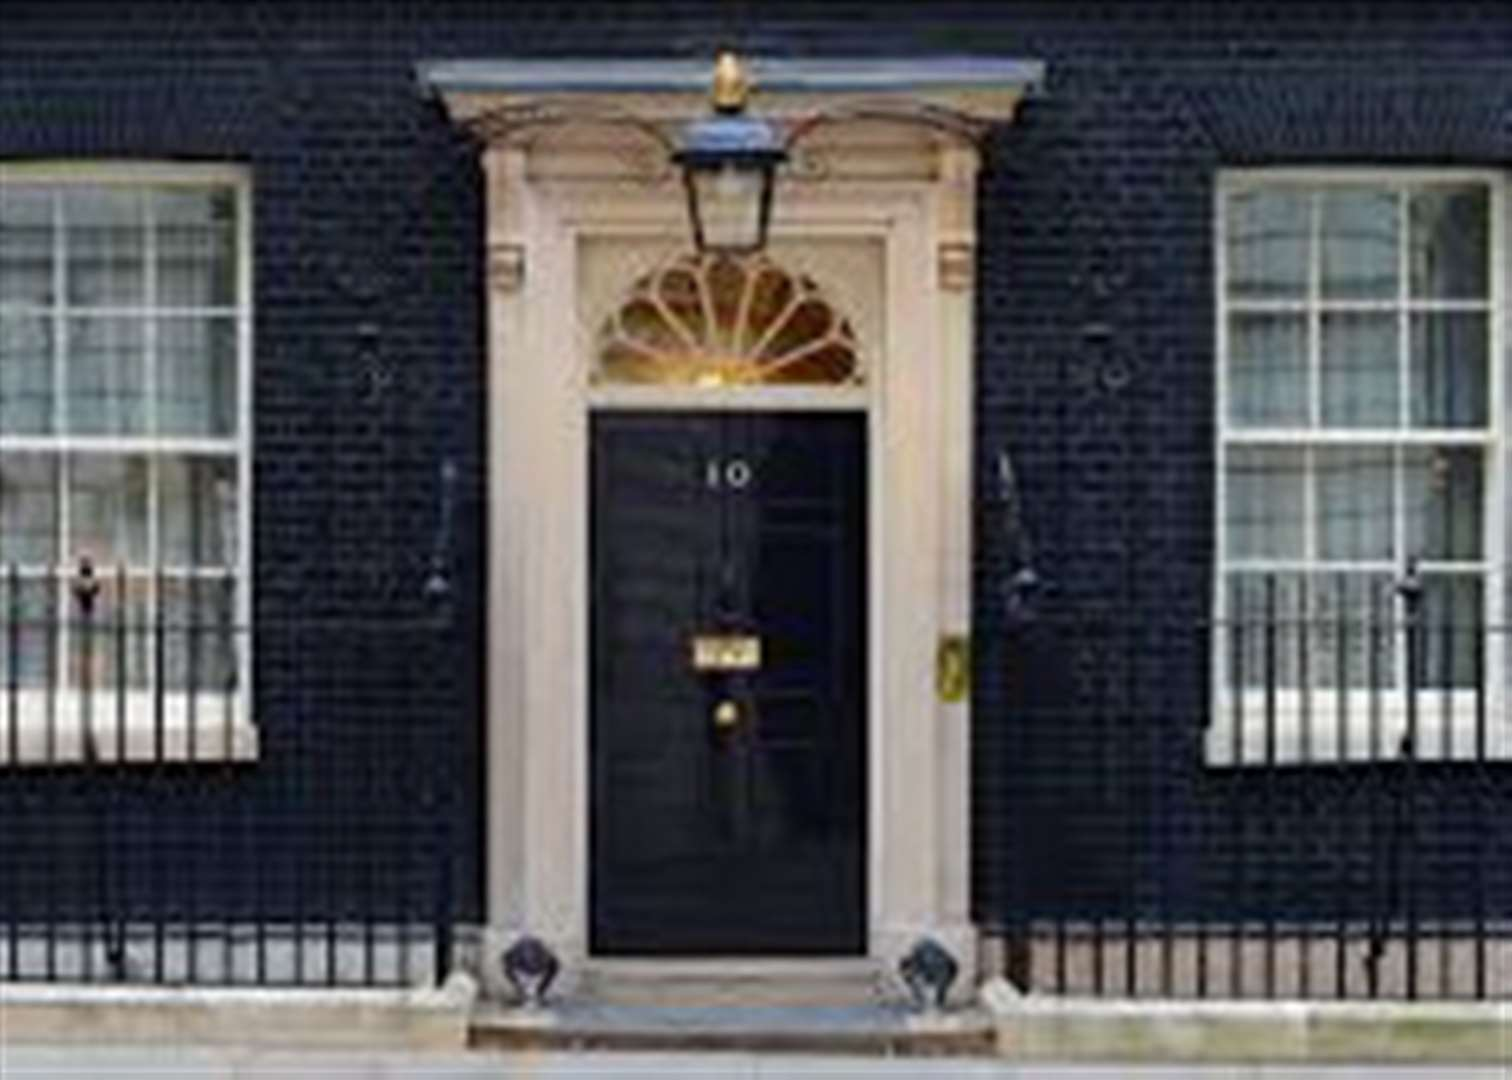 Grantham Journal column: It must be cold outside 10 Downing Street late at night